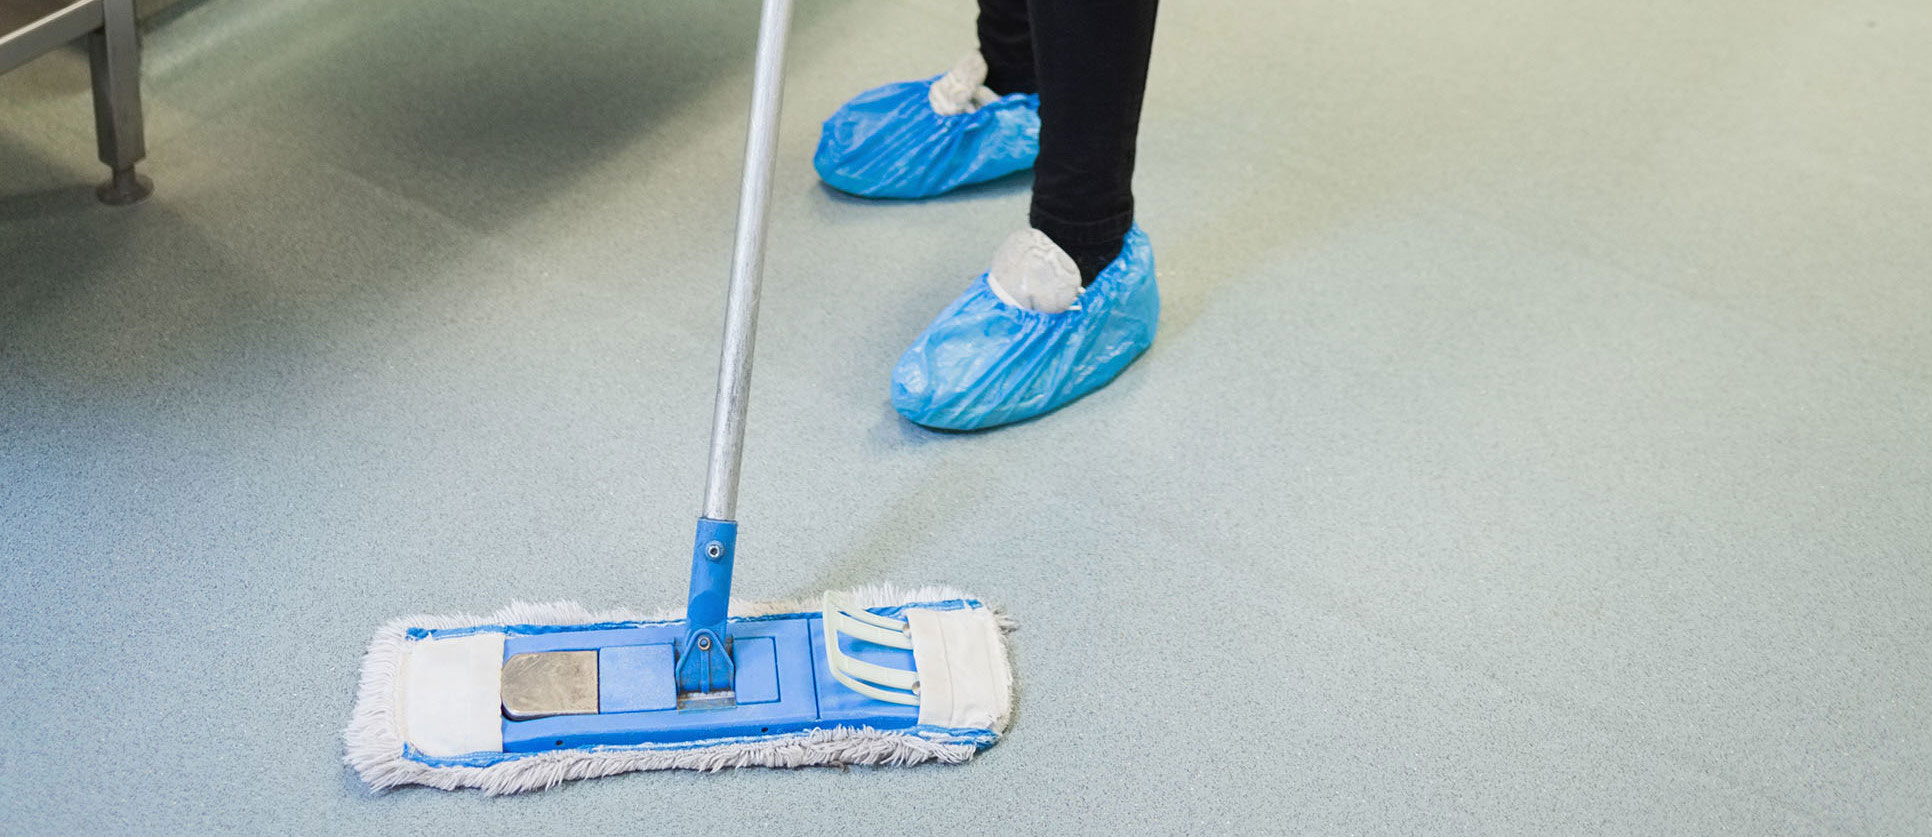 Cleaning and Disinfection of Hospital Floors - The Best Methods